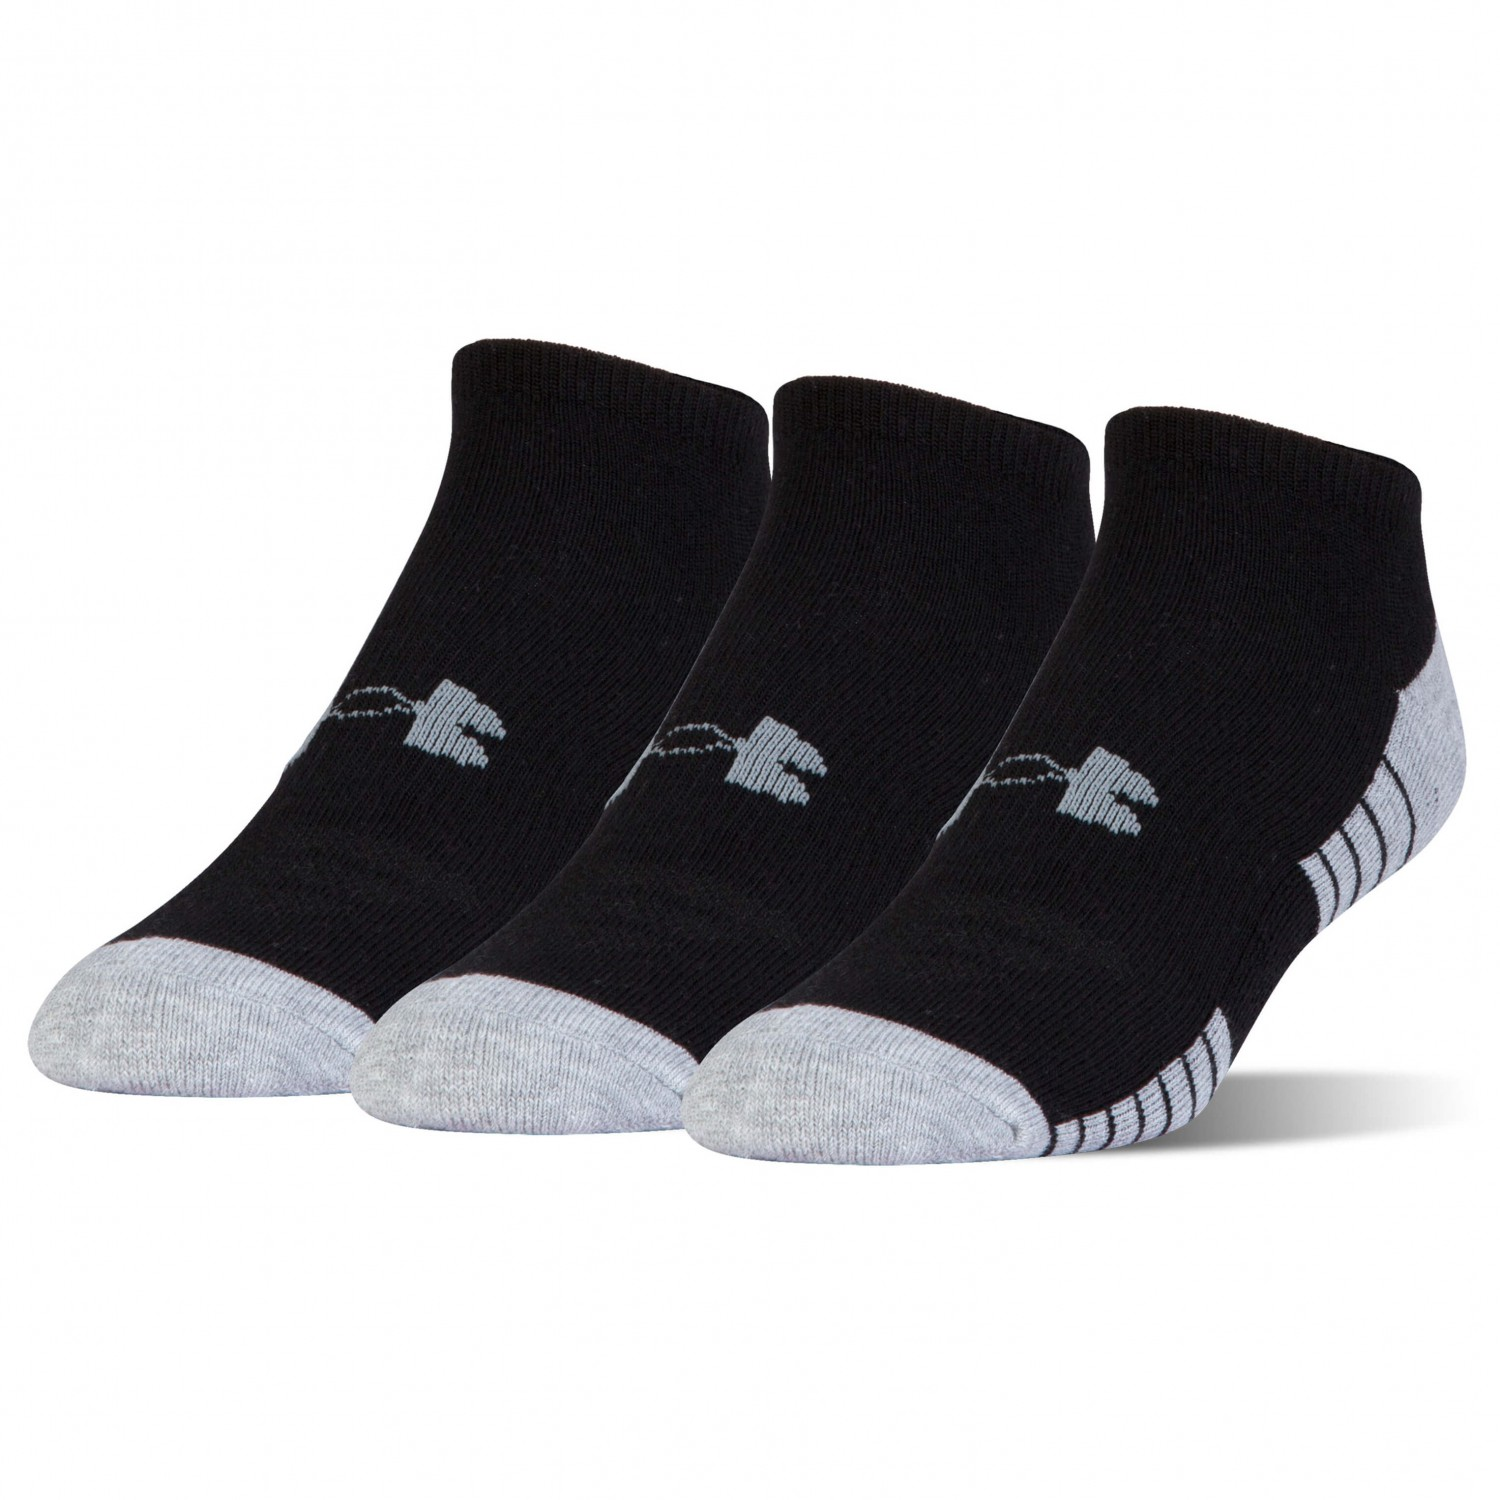 Under Armour - Heatgear Tech Noshow 3 Pack Black / Graphite